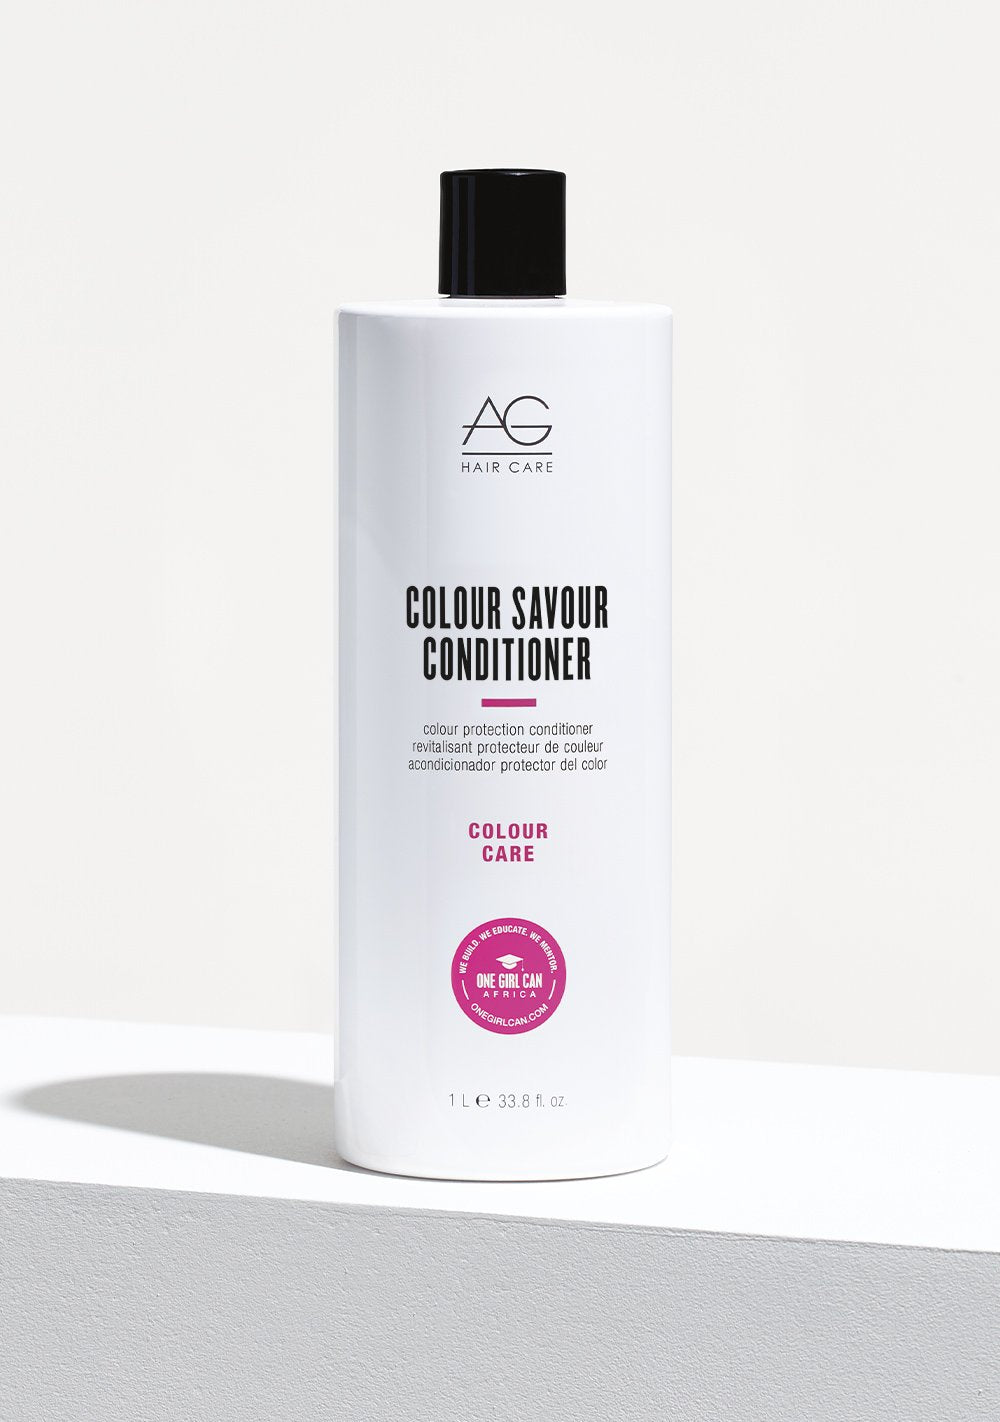 AG Colour Savour Conditioner